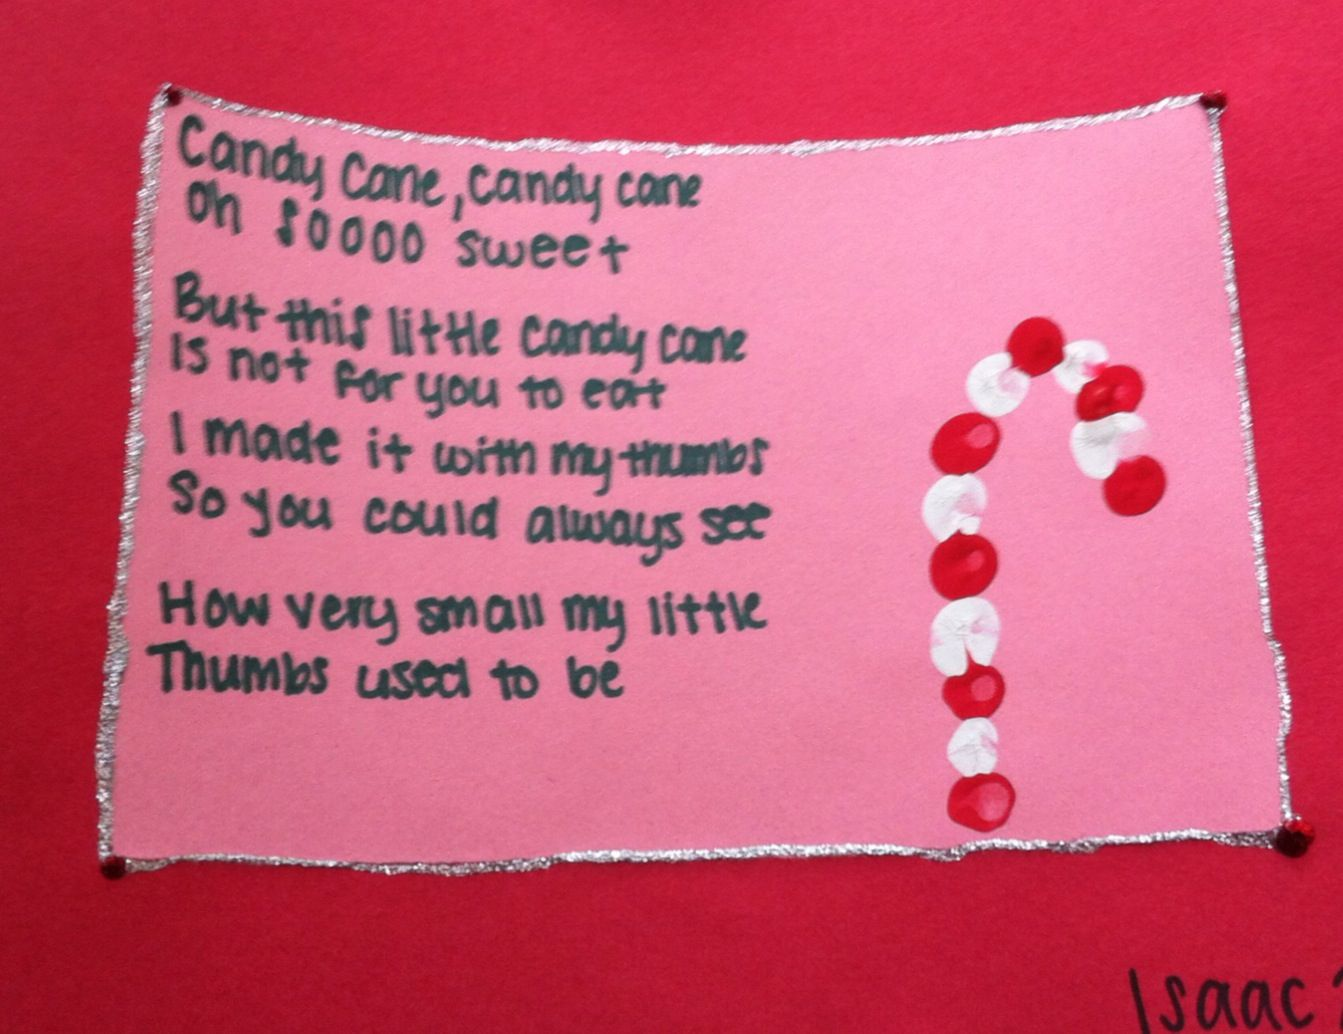 Candy Cane Poem Red And White Thumbprints Construction Paper Glitter Glue Candycane